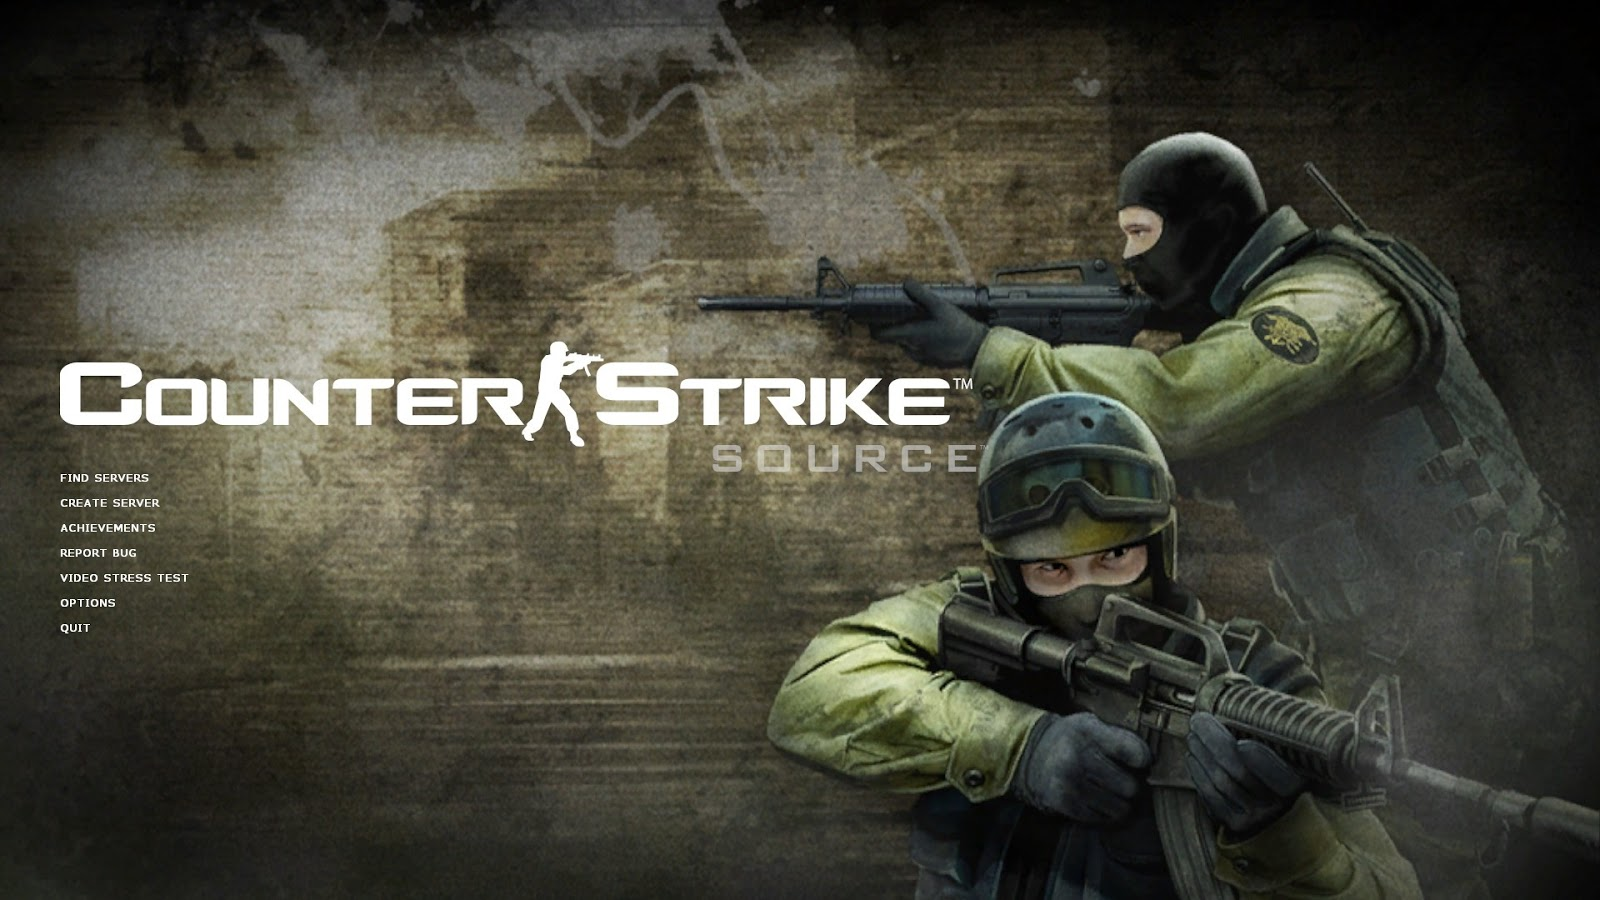 Counter-Strike 1.6 No Steam [Full] [Online] [MF] MEGA, 4shared 1 link juego online español